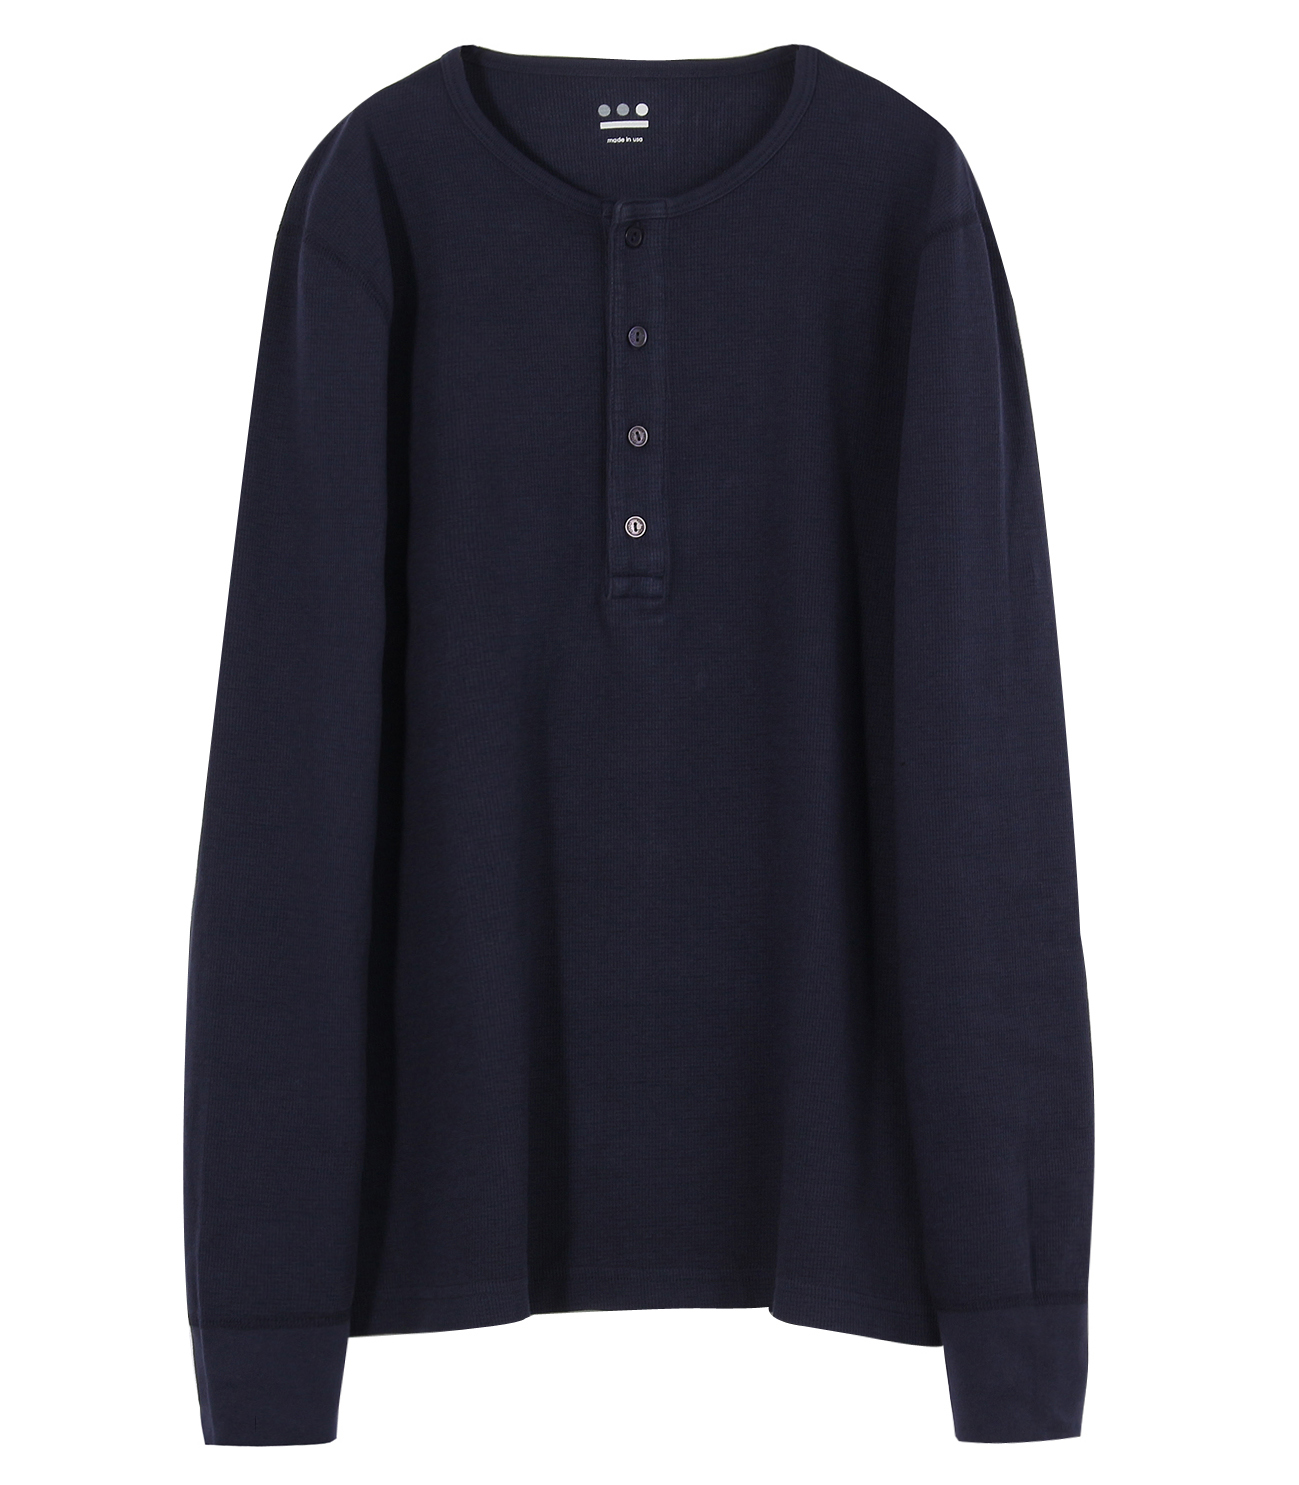 brushed thermal l/s henley 詳細画像 night iris 1